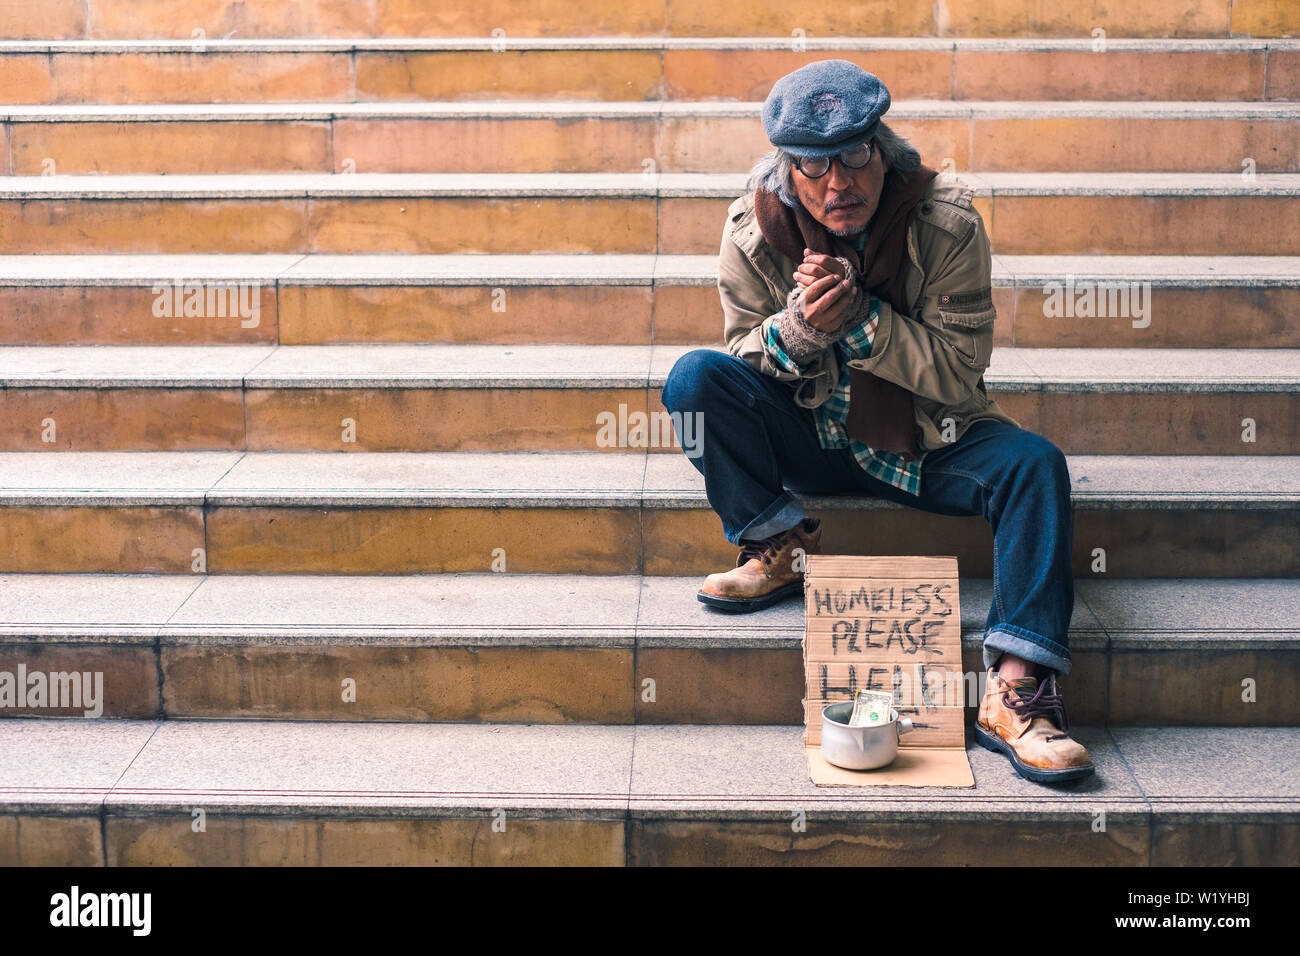 Dirty homeless person sitting on stairs with dollar cash in can, cold and lonely - Stock Image